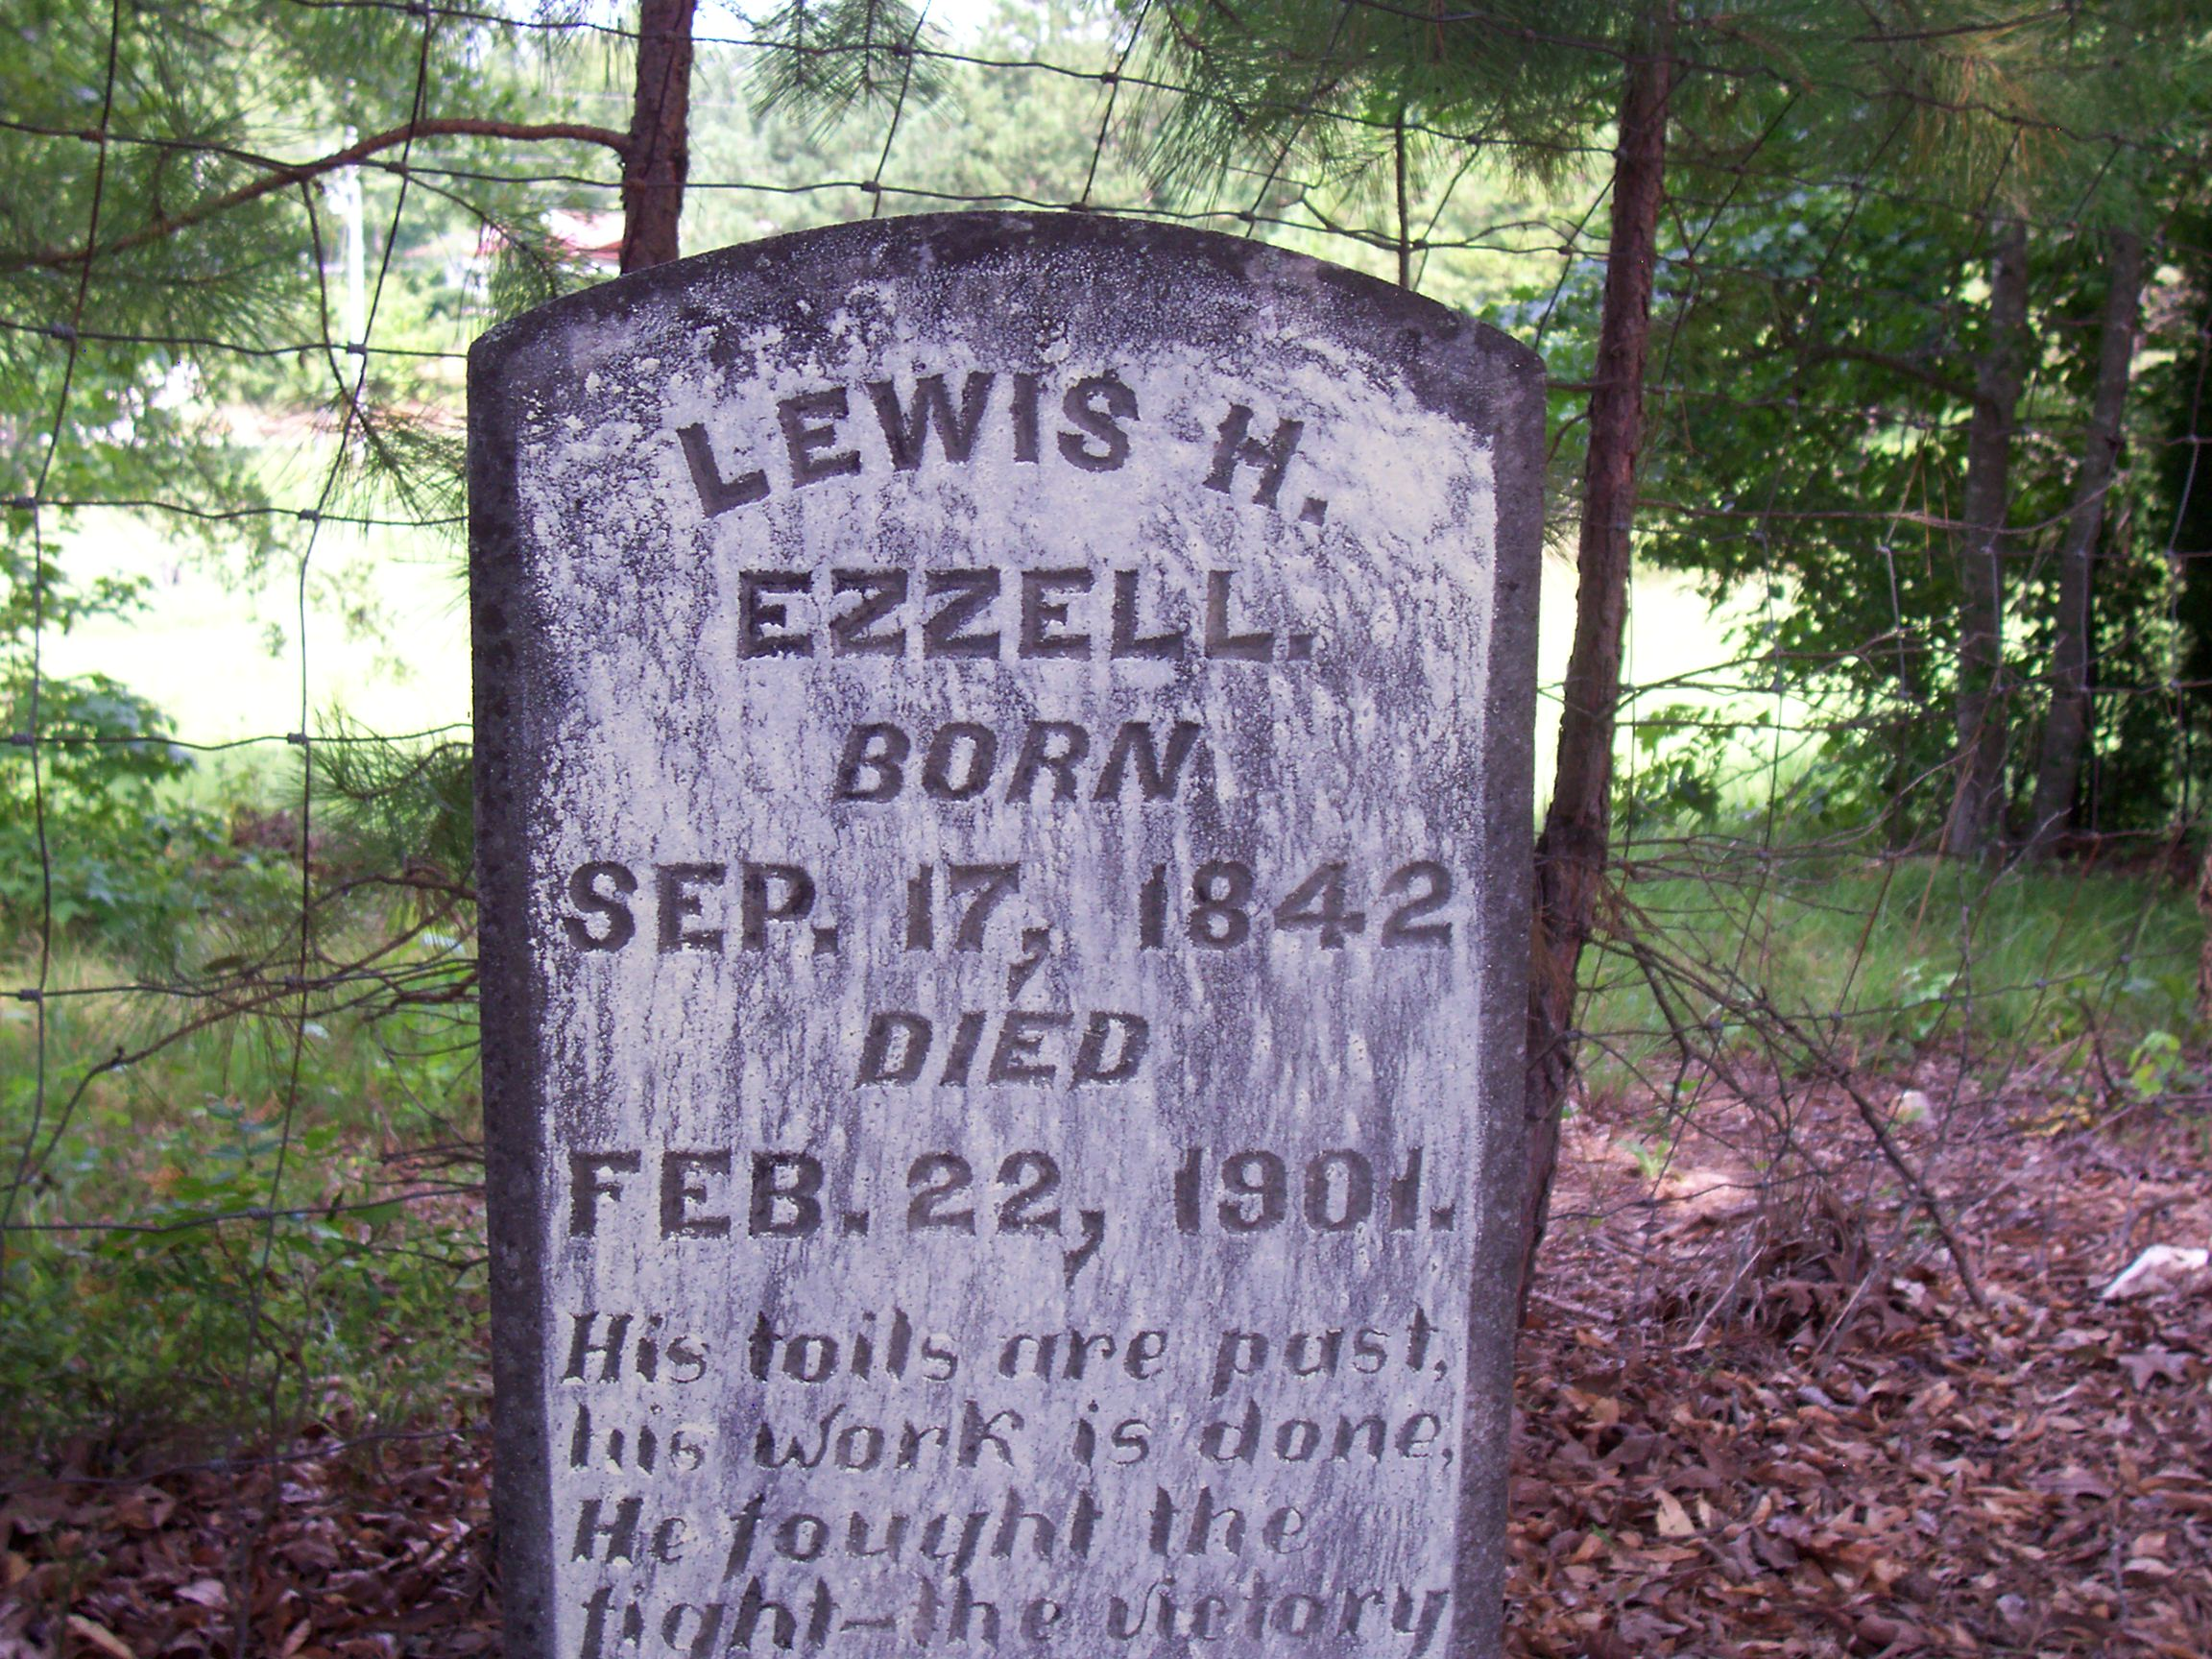 Lewis H Ezzell